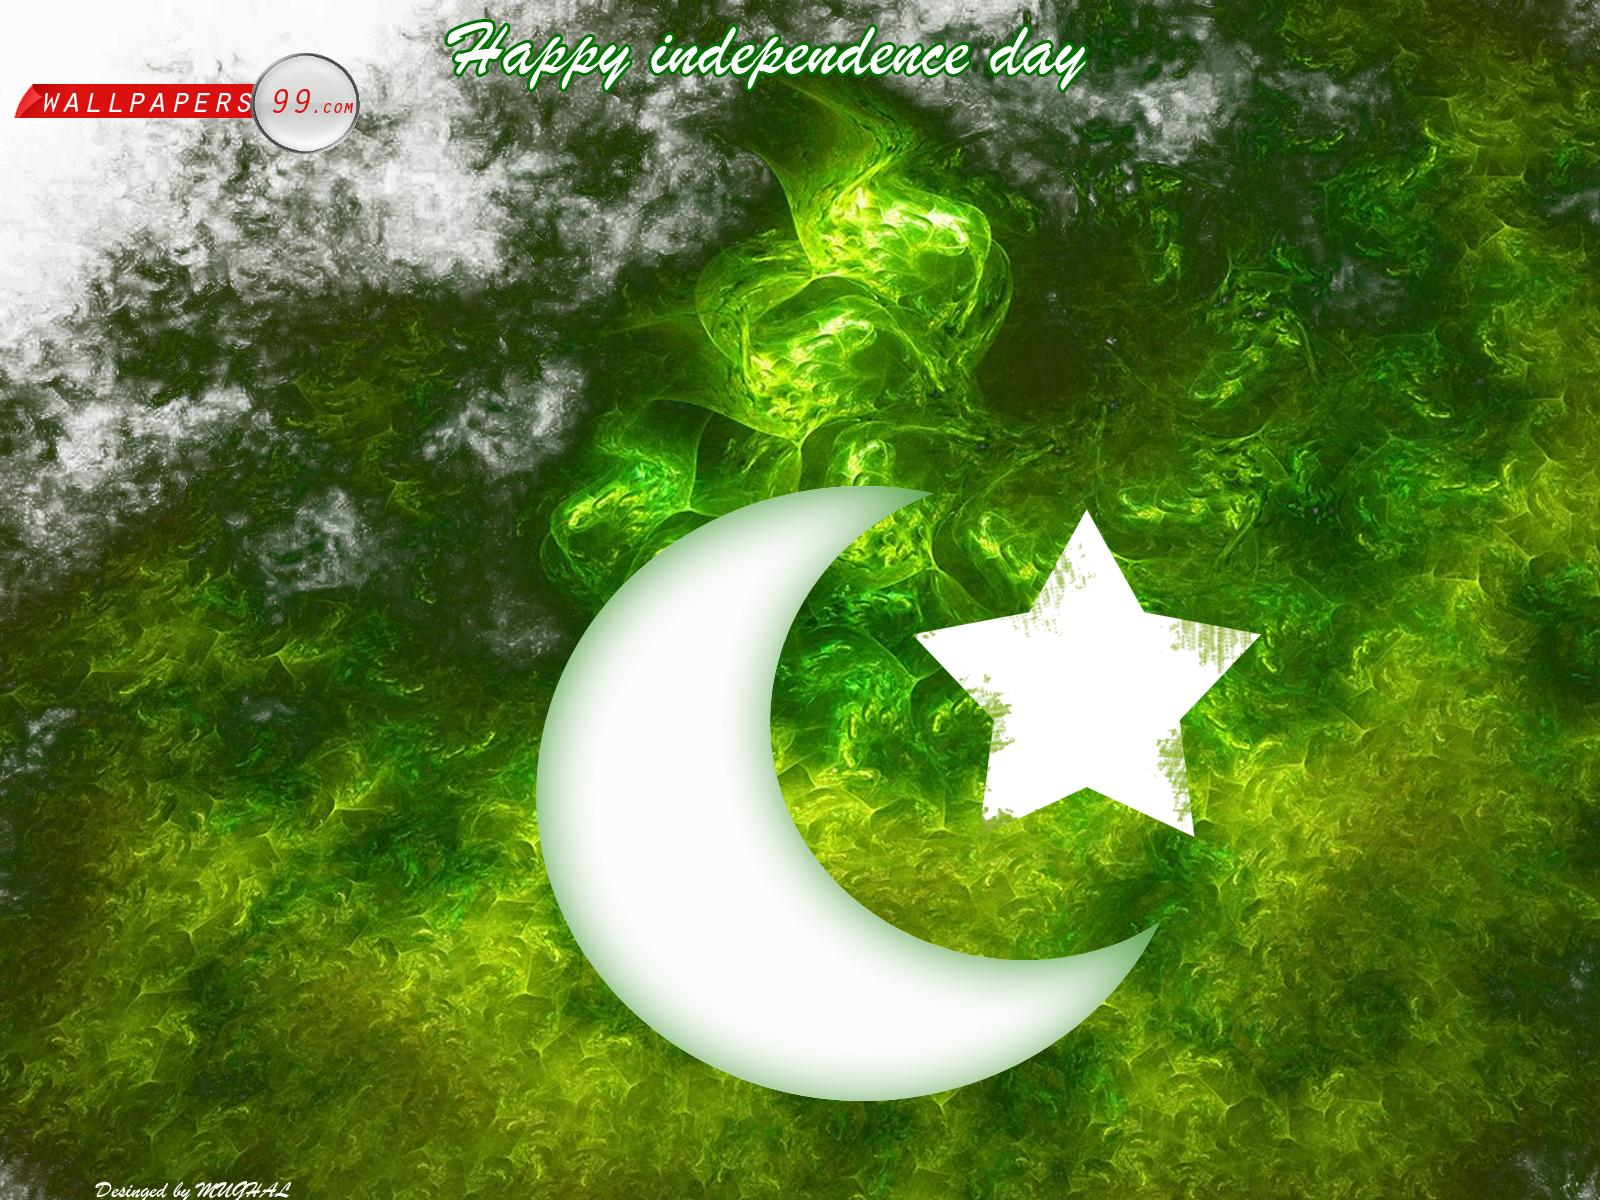 14 august wallpaper independence - photo #2